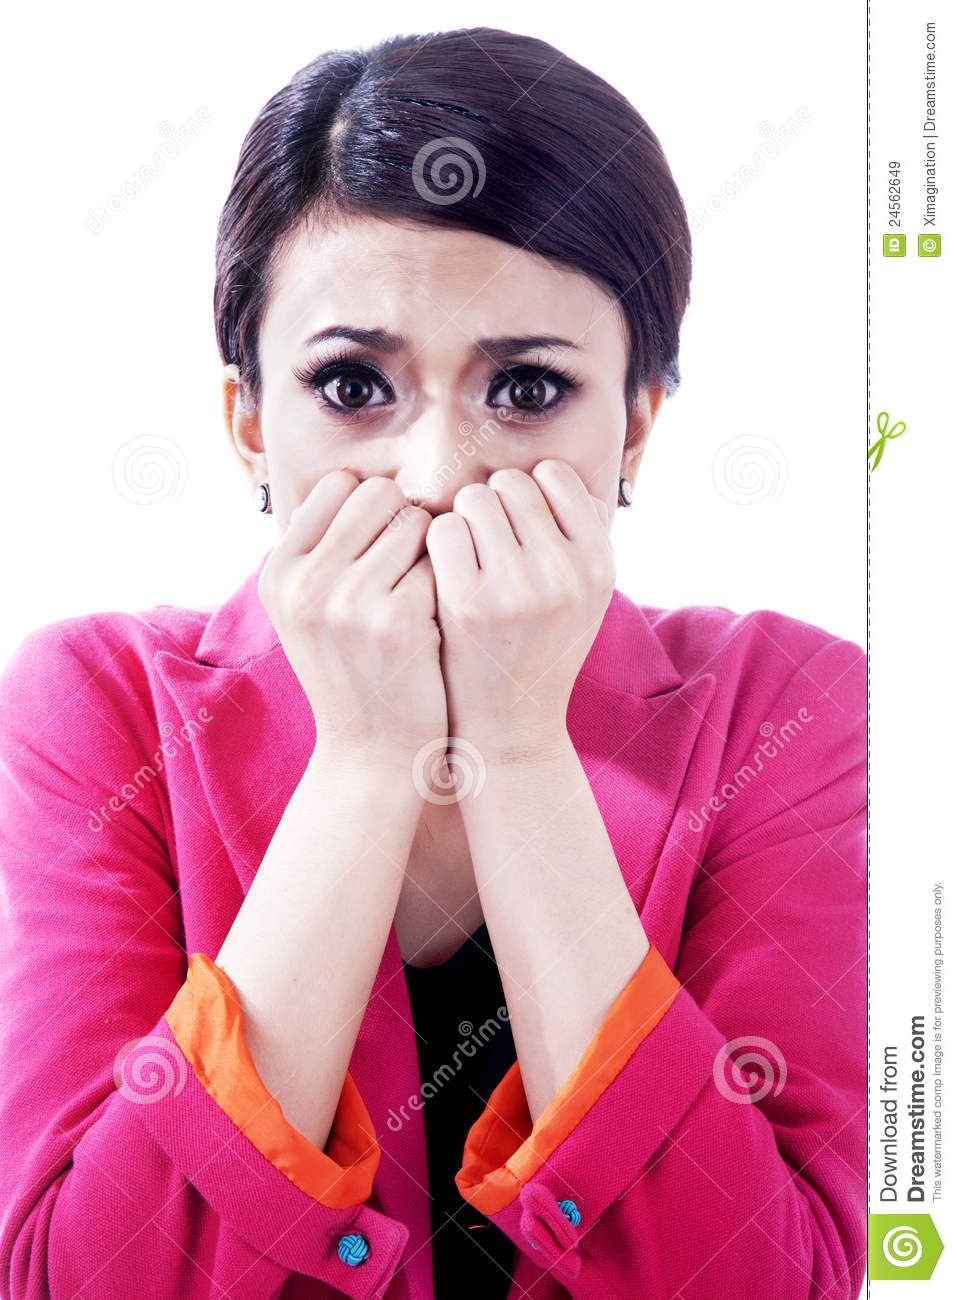 Scared Nail Biter Google Search Business Women Stock Images Free Image